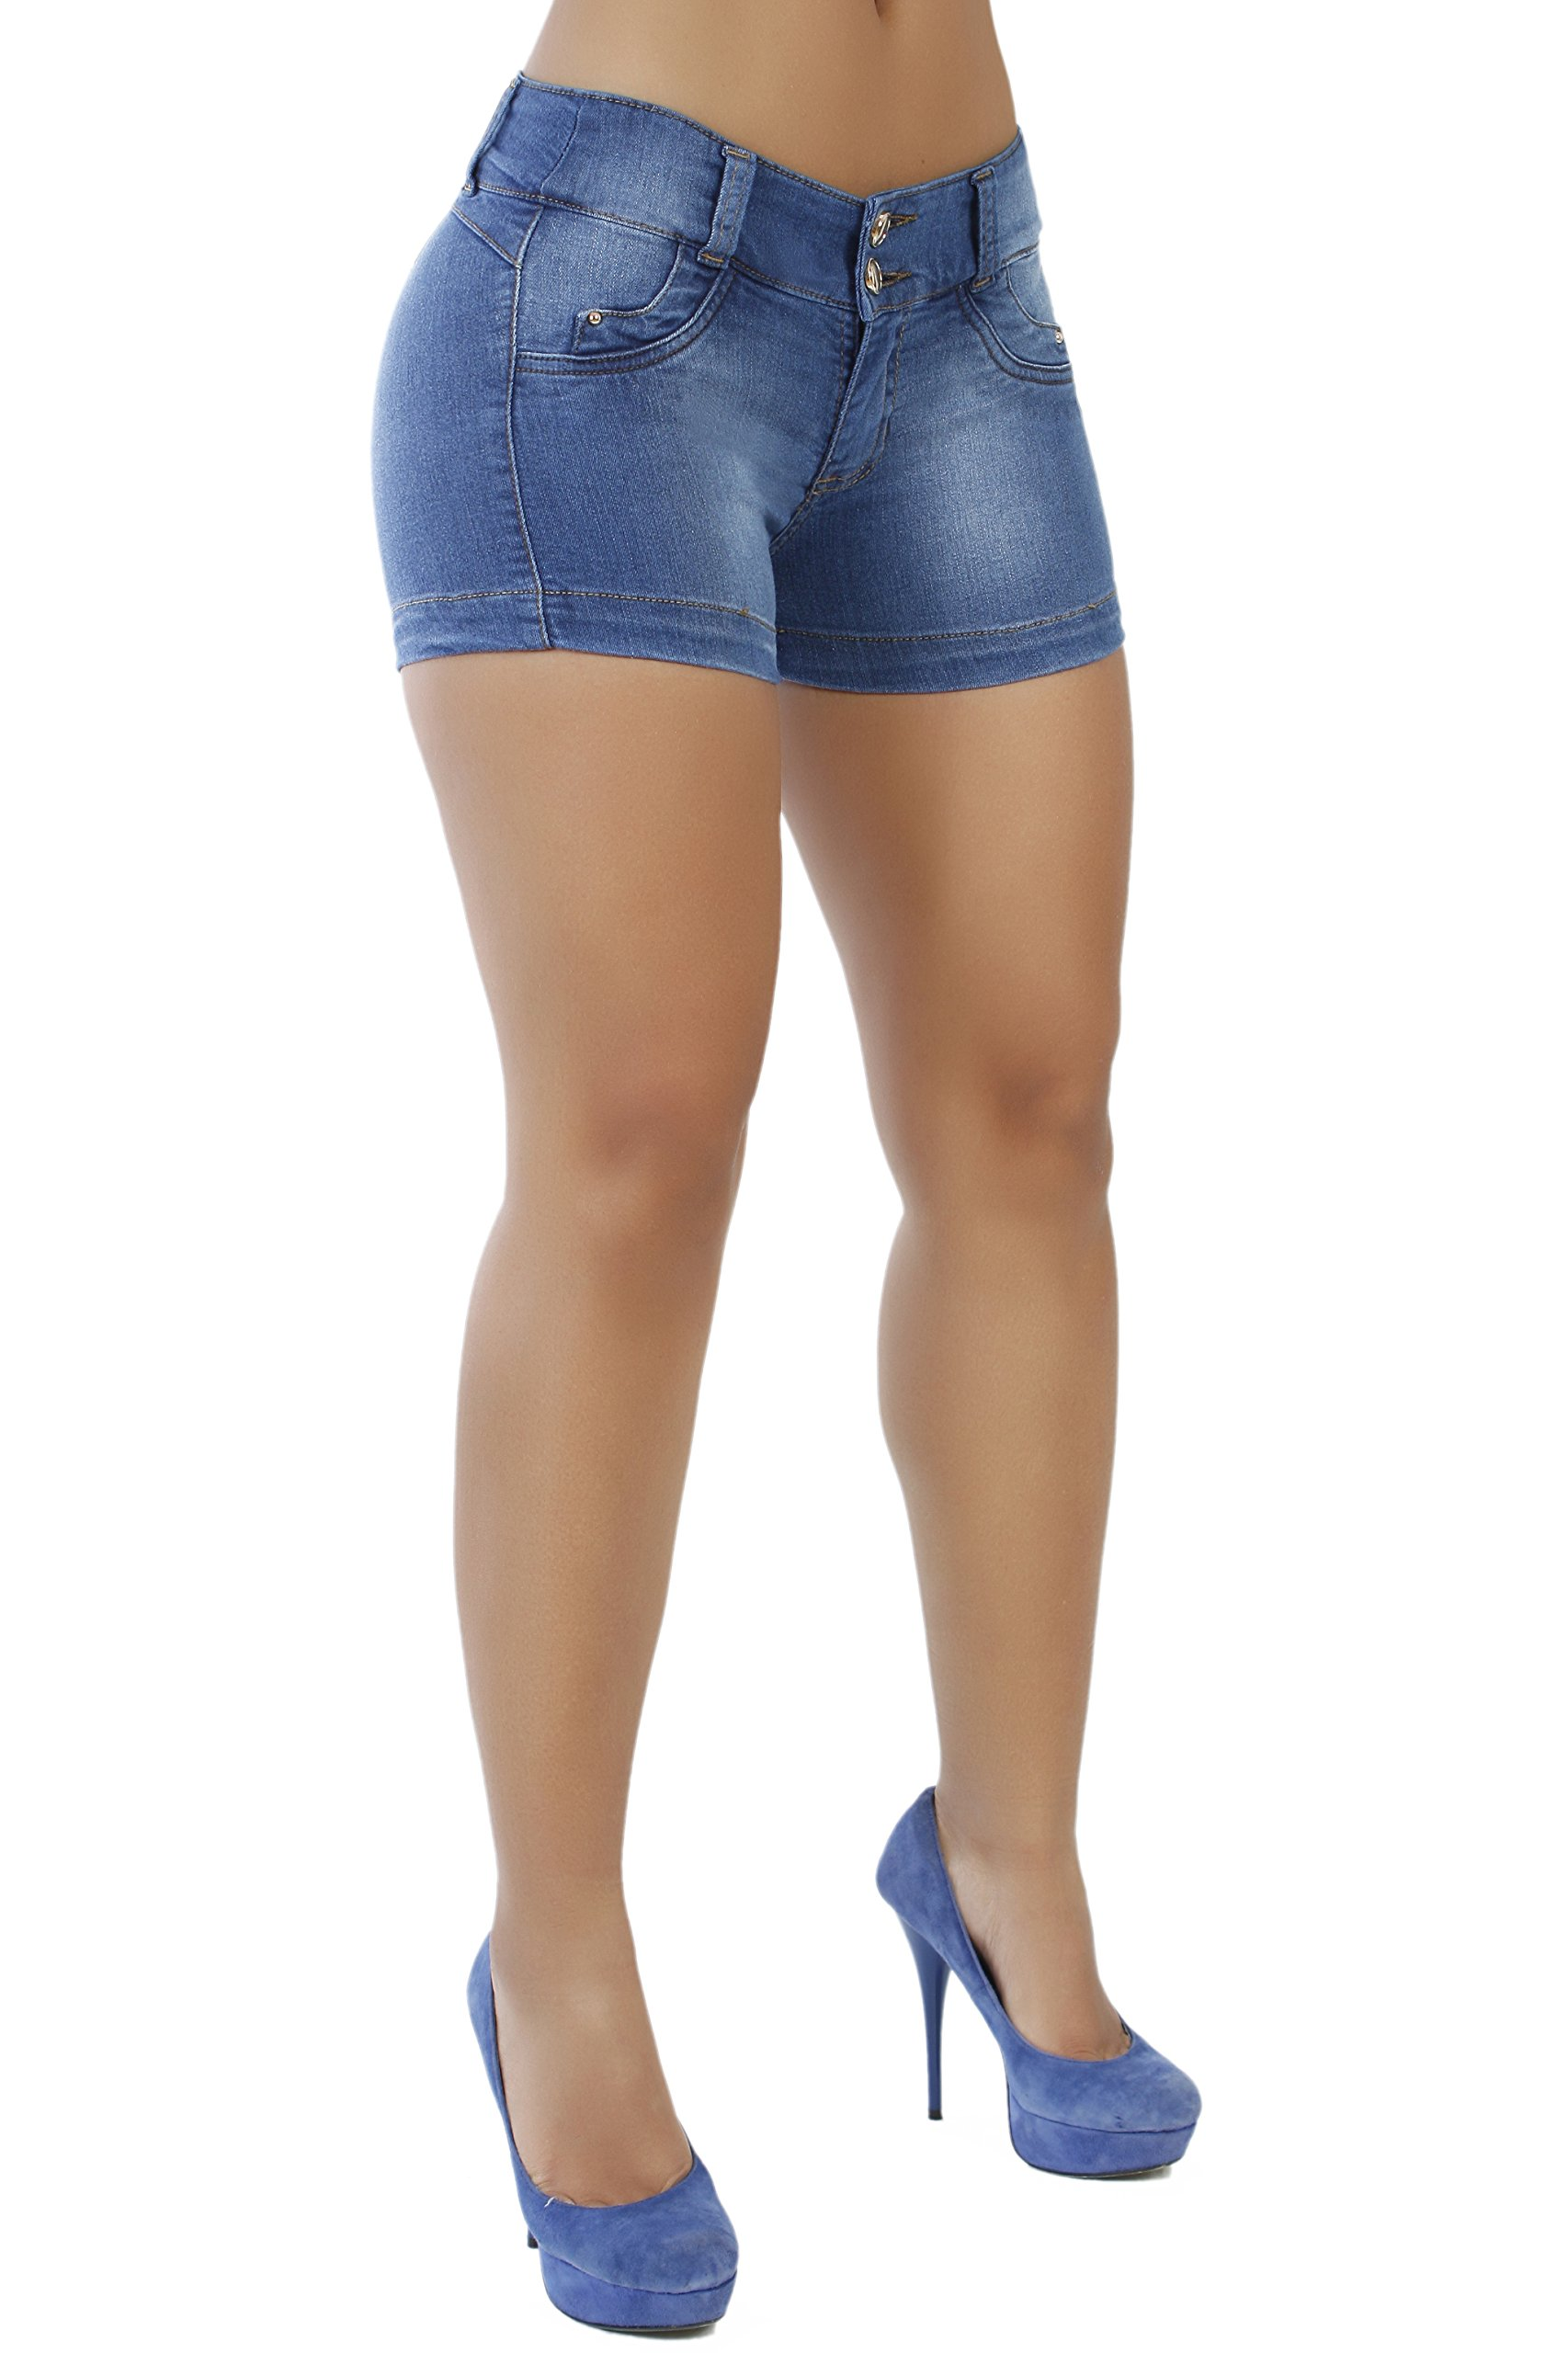 Curvify Butt Lift Stretch Sexy Jean Shorts For Women | Mid Rise Denim Shorts Levantacola 764 (Shorts FW 7)